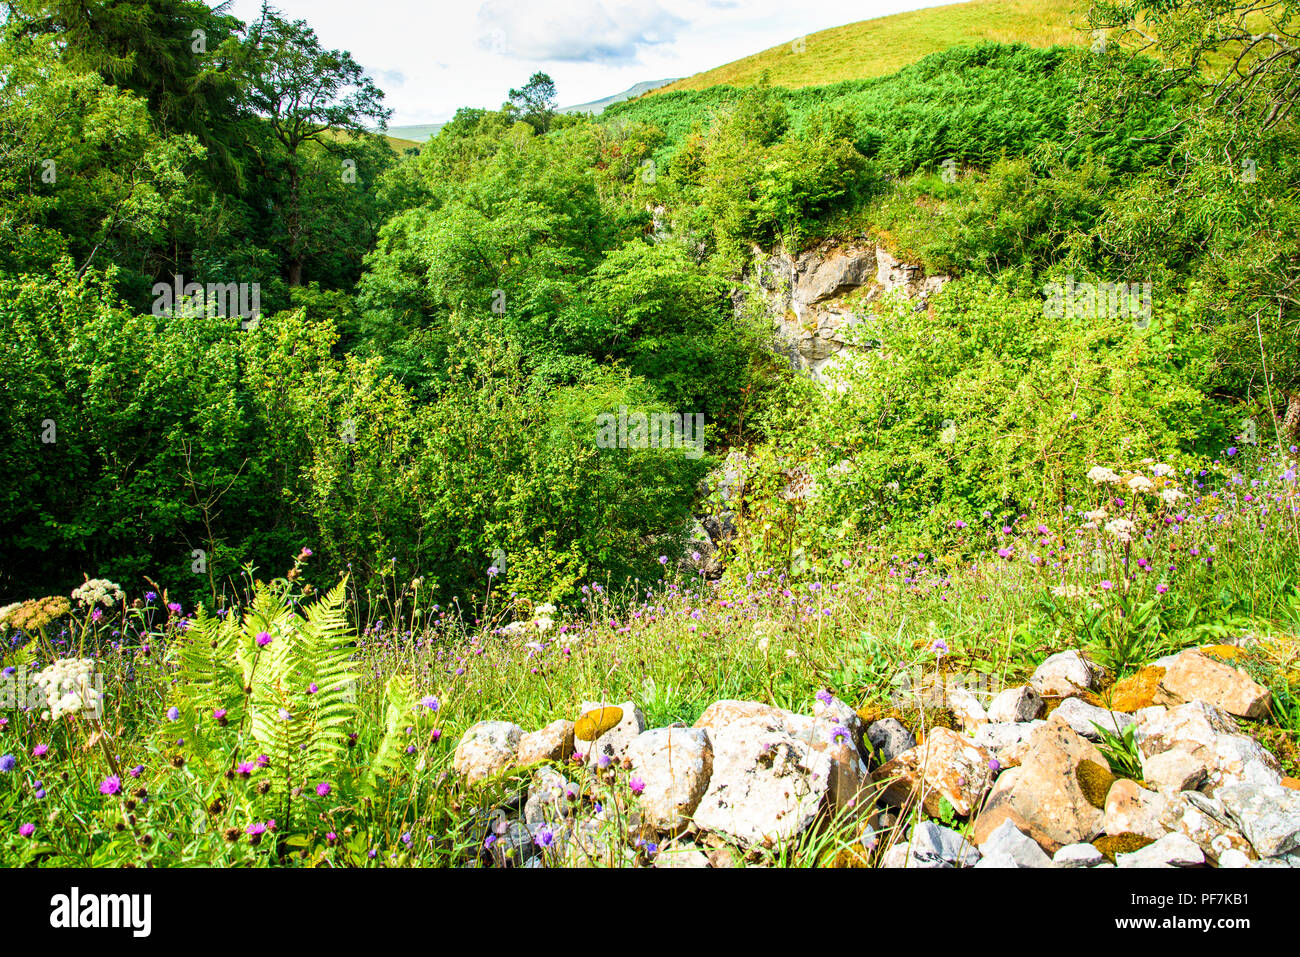 The ravine of Ling Gill above Ribblesdale. Yorkshire Dales National Park. It is a Site of Special Scientific Interest and a National Nature Reserve - Stock Image